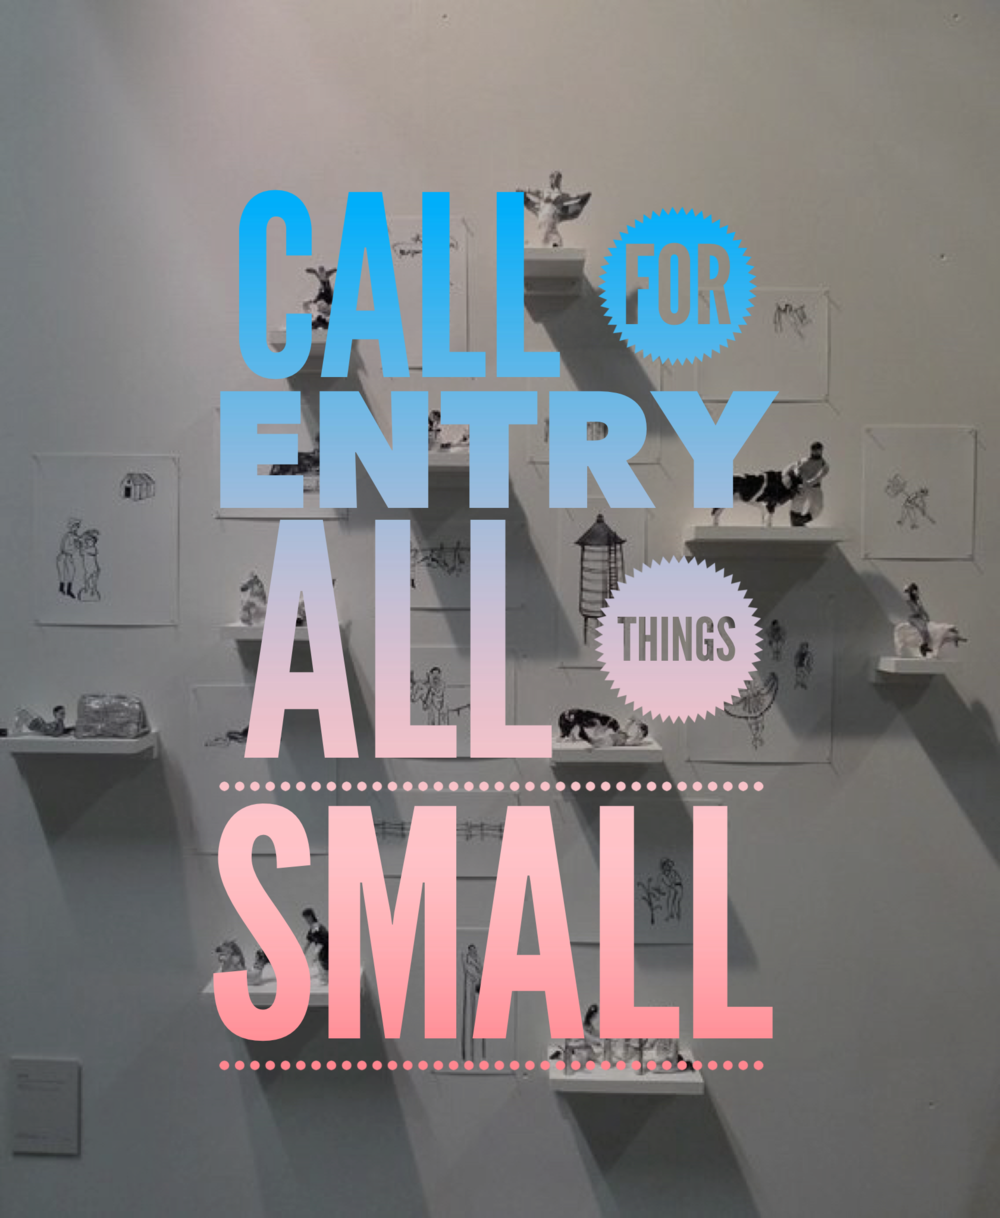 Call_for _entry_all_things_small.PNG